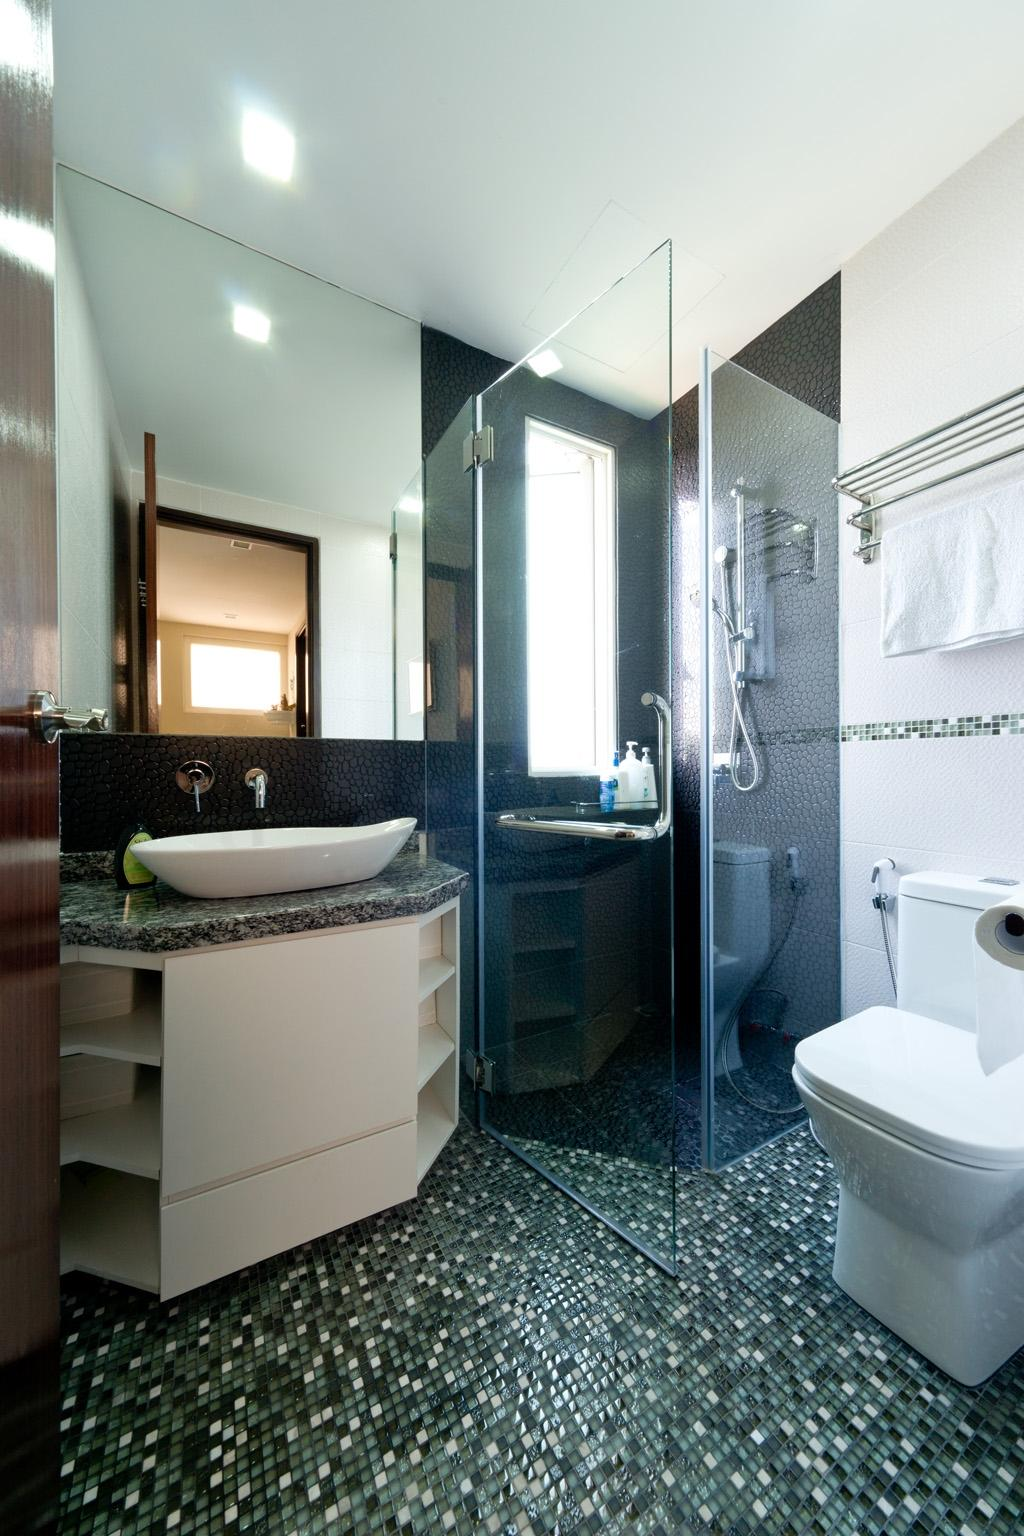 Eclectic, Condo, Bathroom, Country Park @ Bedok Road, Interior Designer, Unity ID, Mosaic Tiles, Mosaic, Glass Cubicle, Bathroom Counter, Mirror, White, Green, Vessel Sink, Marble Counter